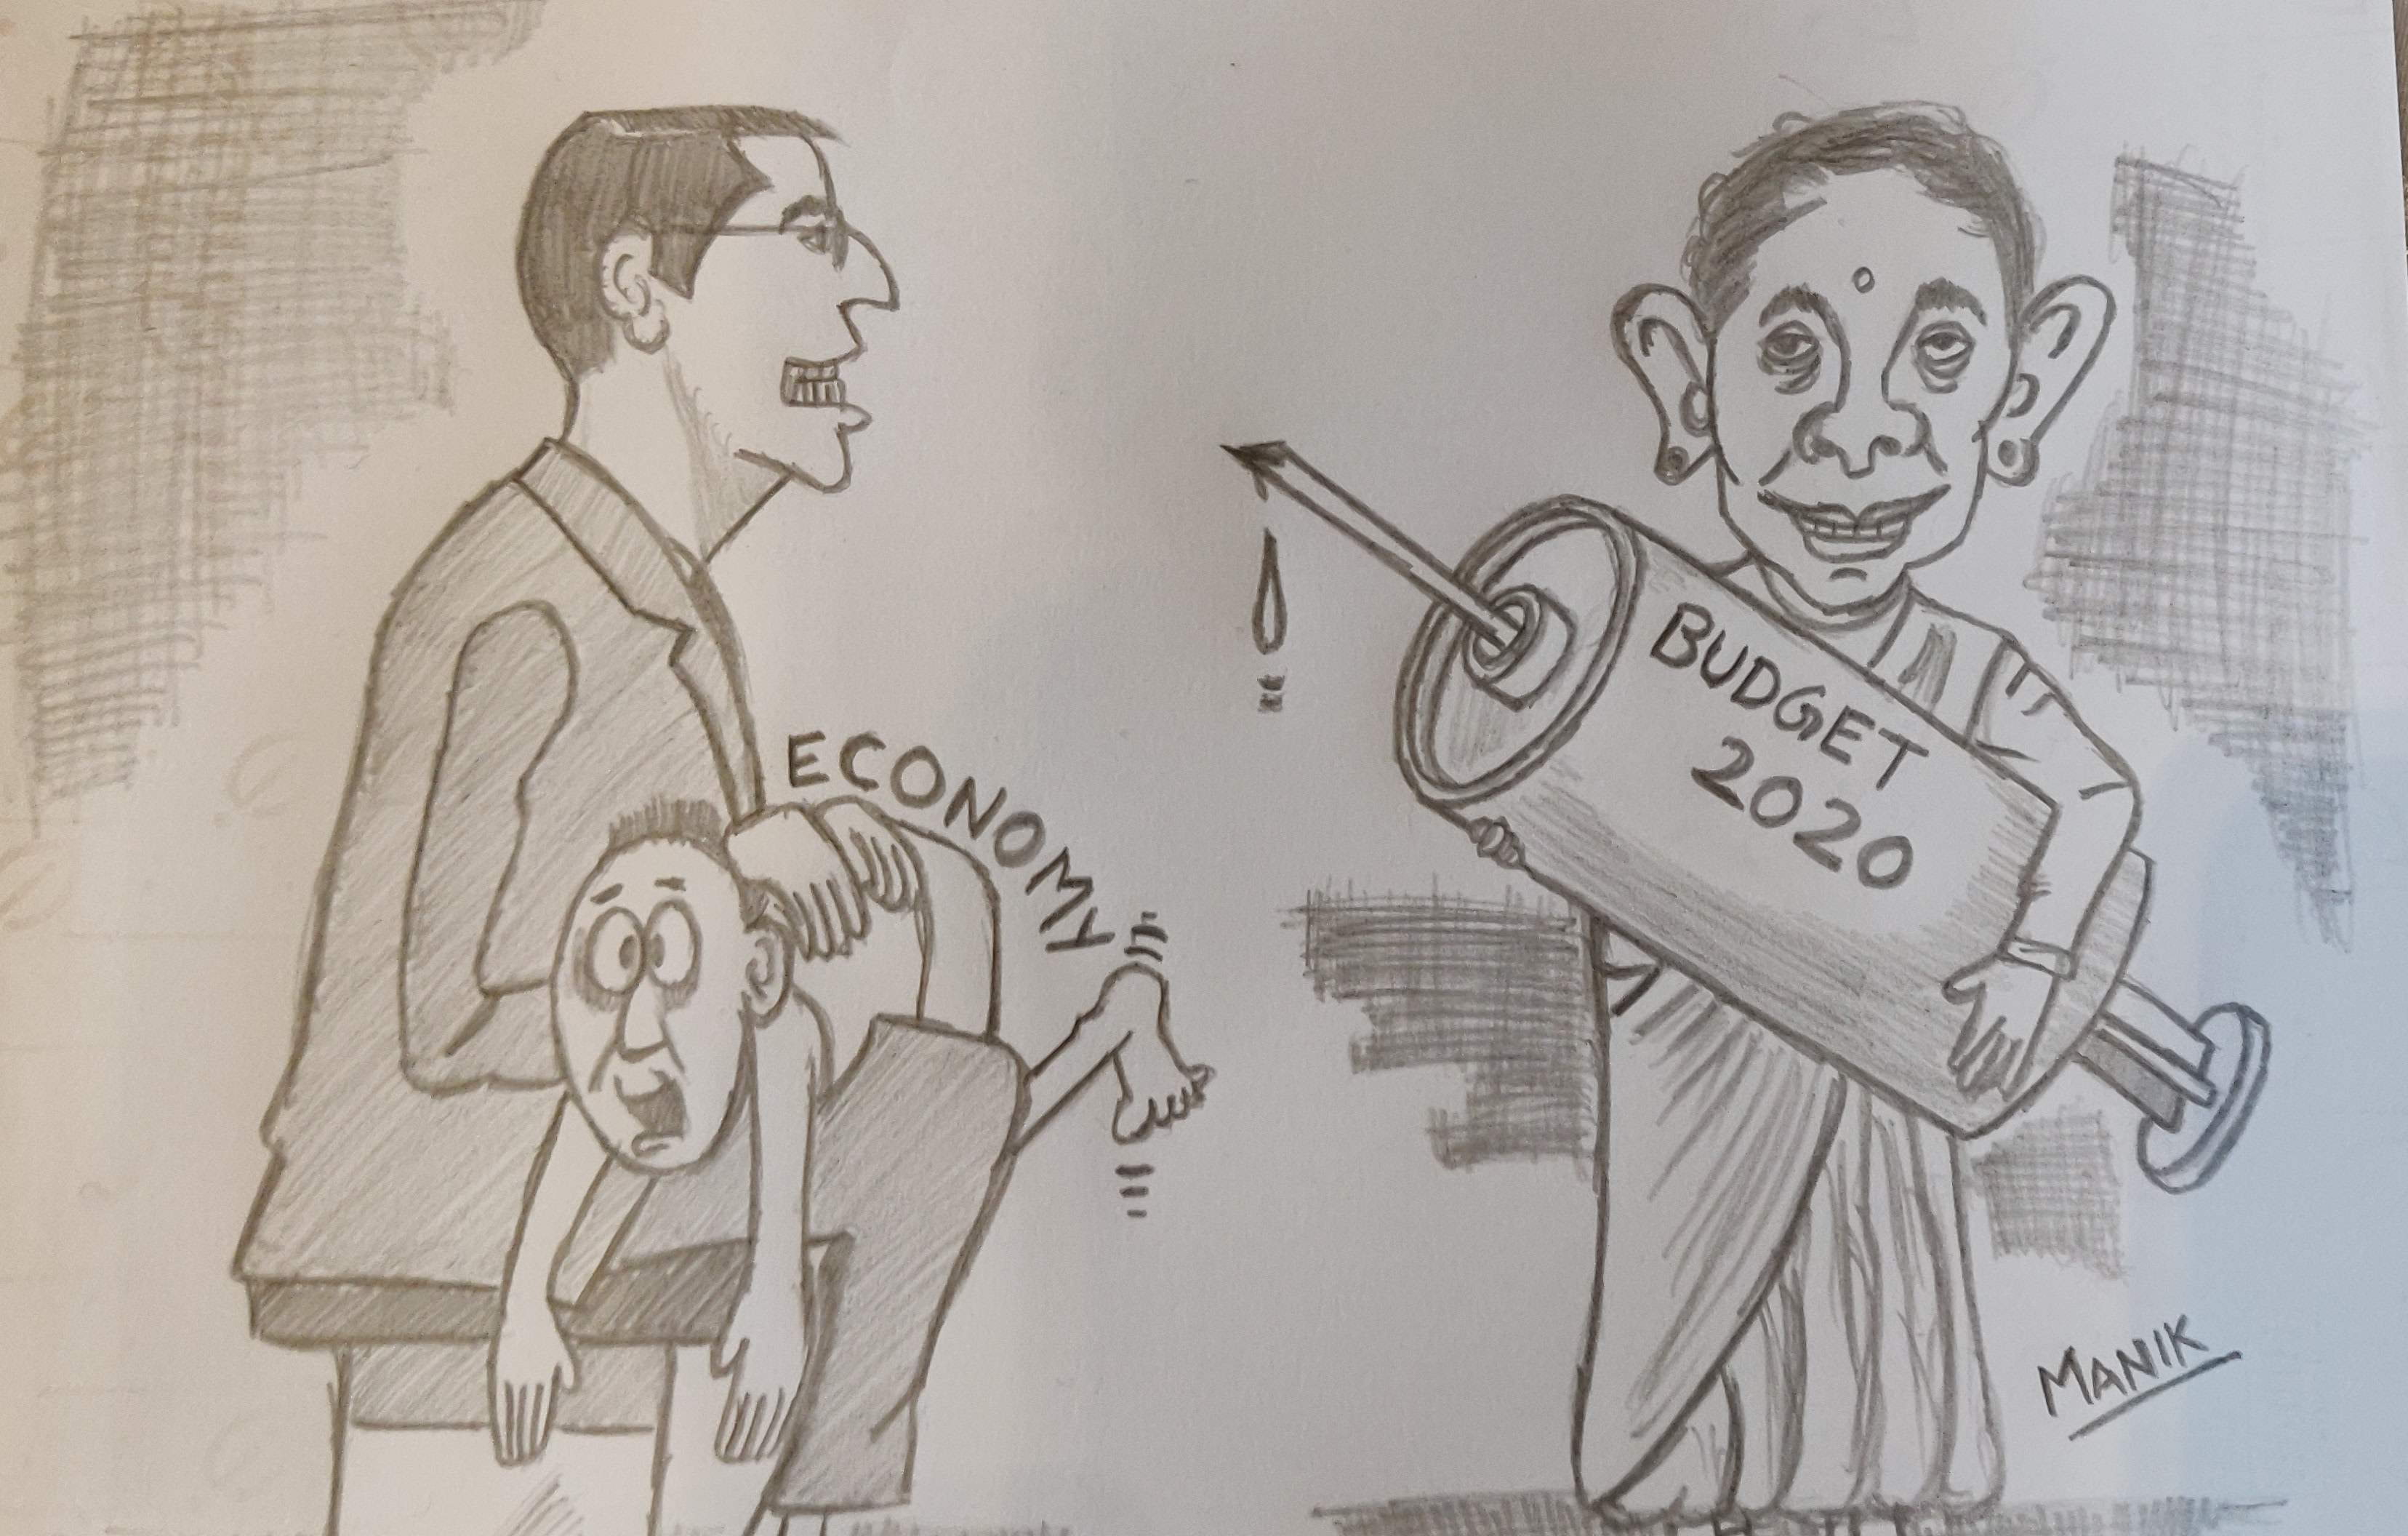 Indian Economy and the Impact of Budget